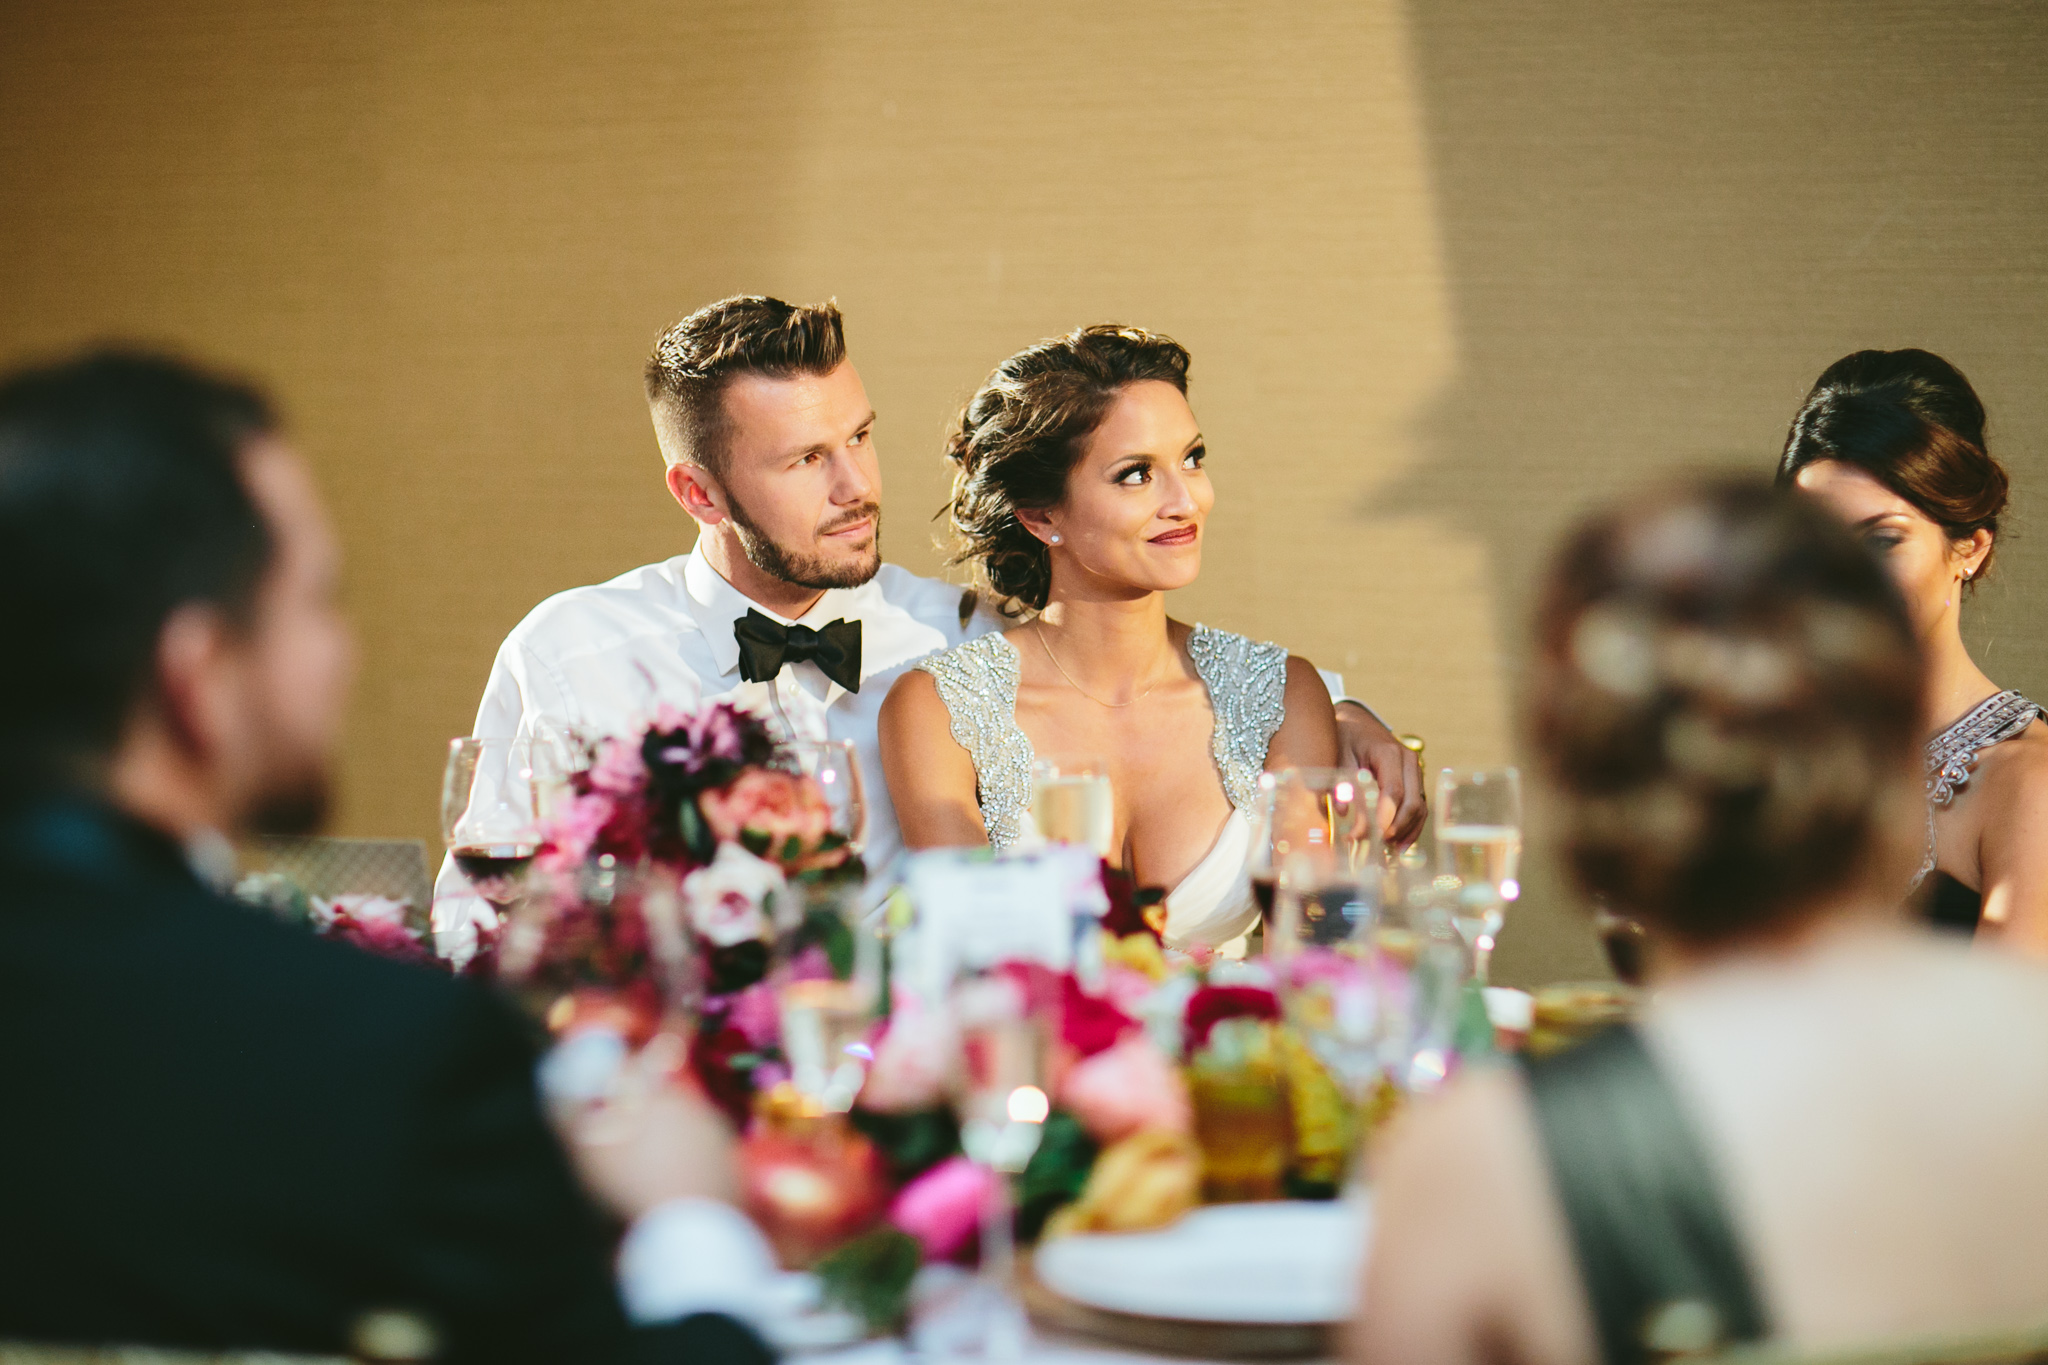 Brianna+Jeff-WEDDING_KellyBoitanoPhotography20151219_0159